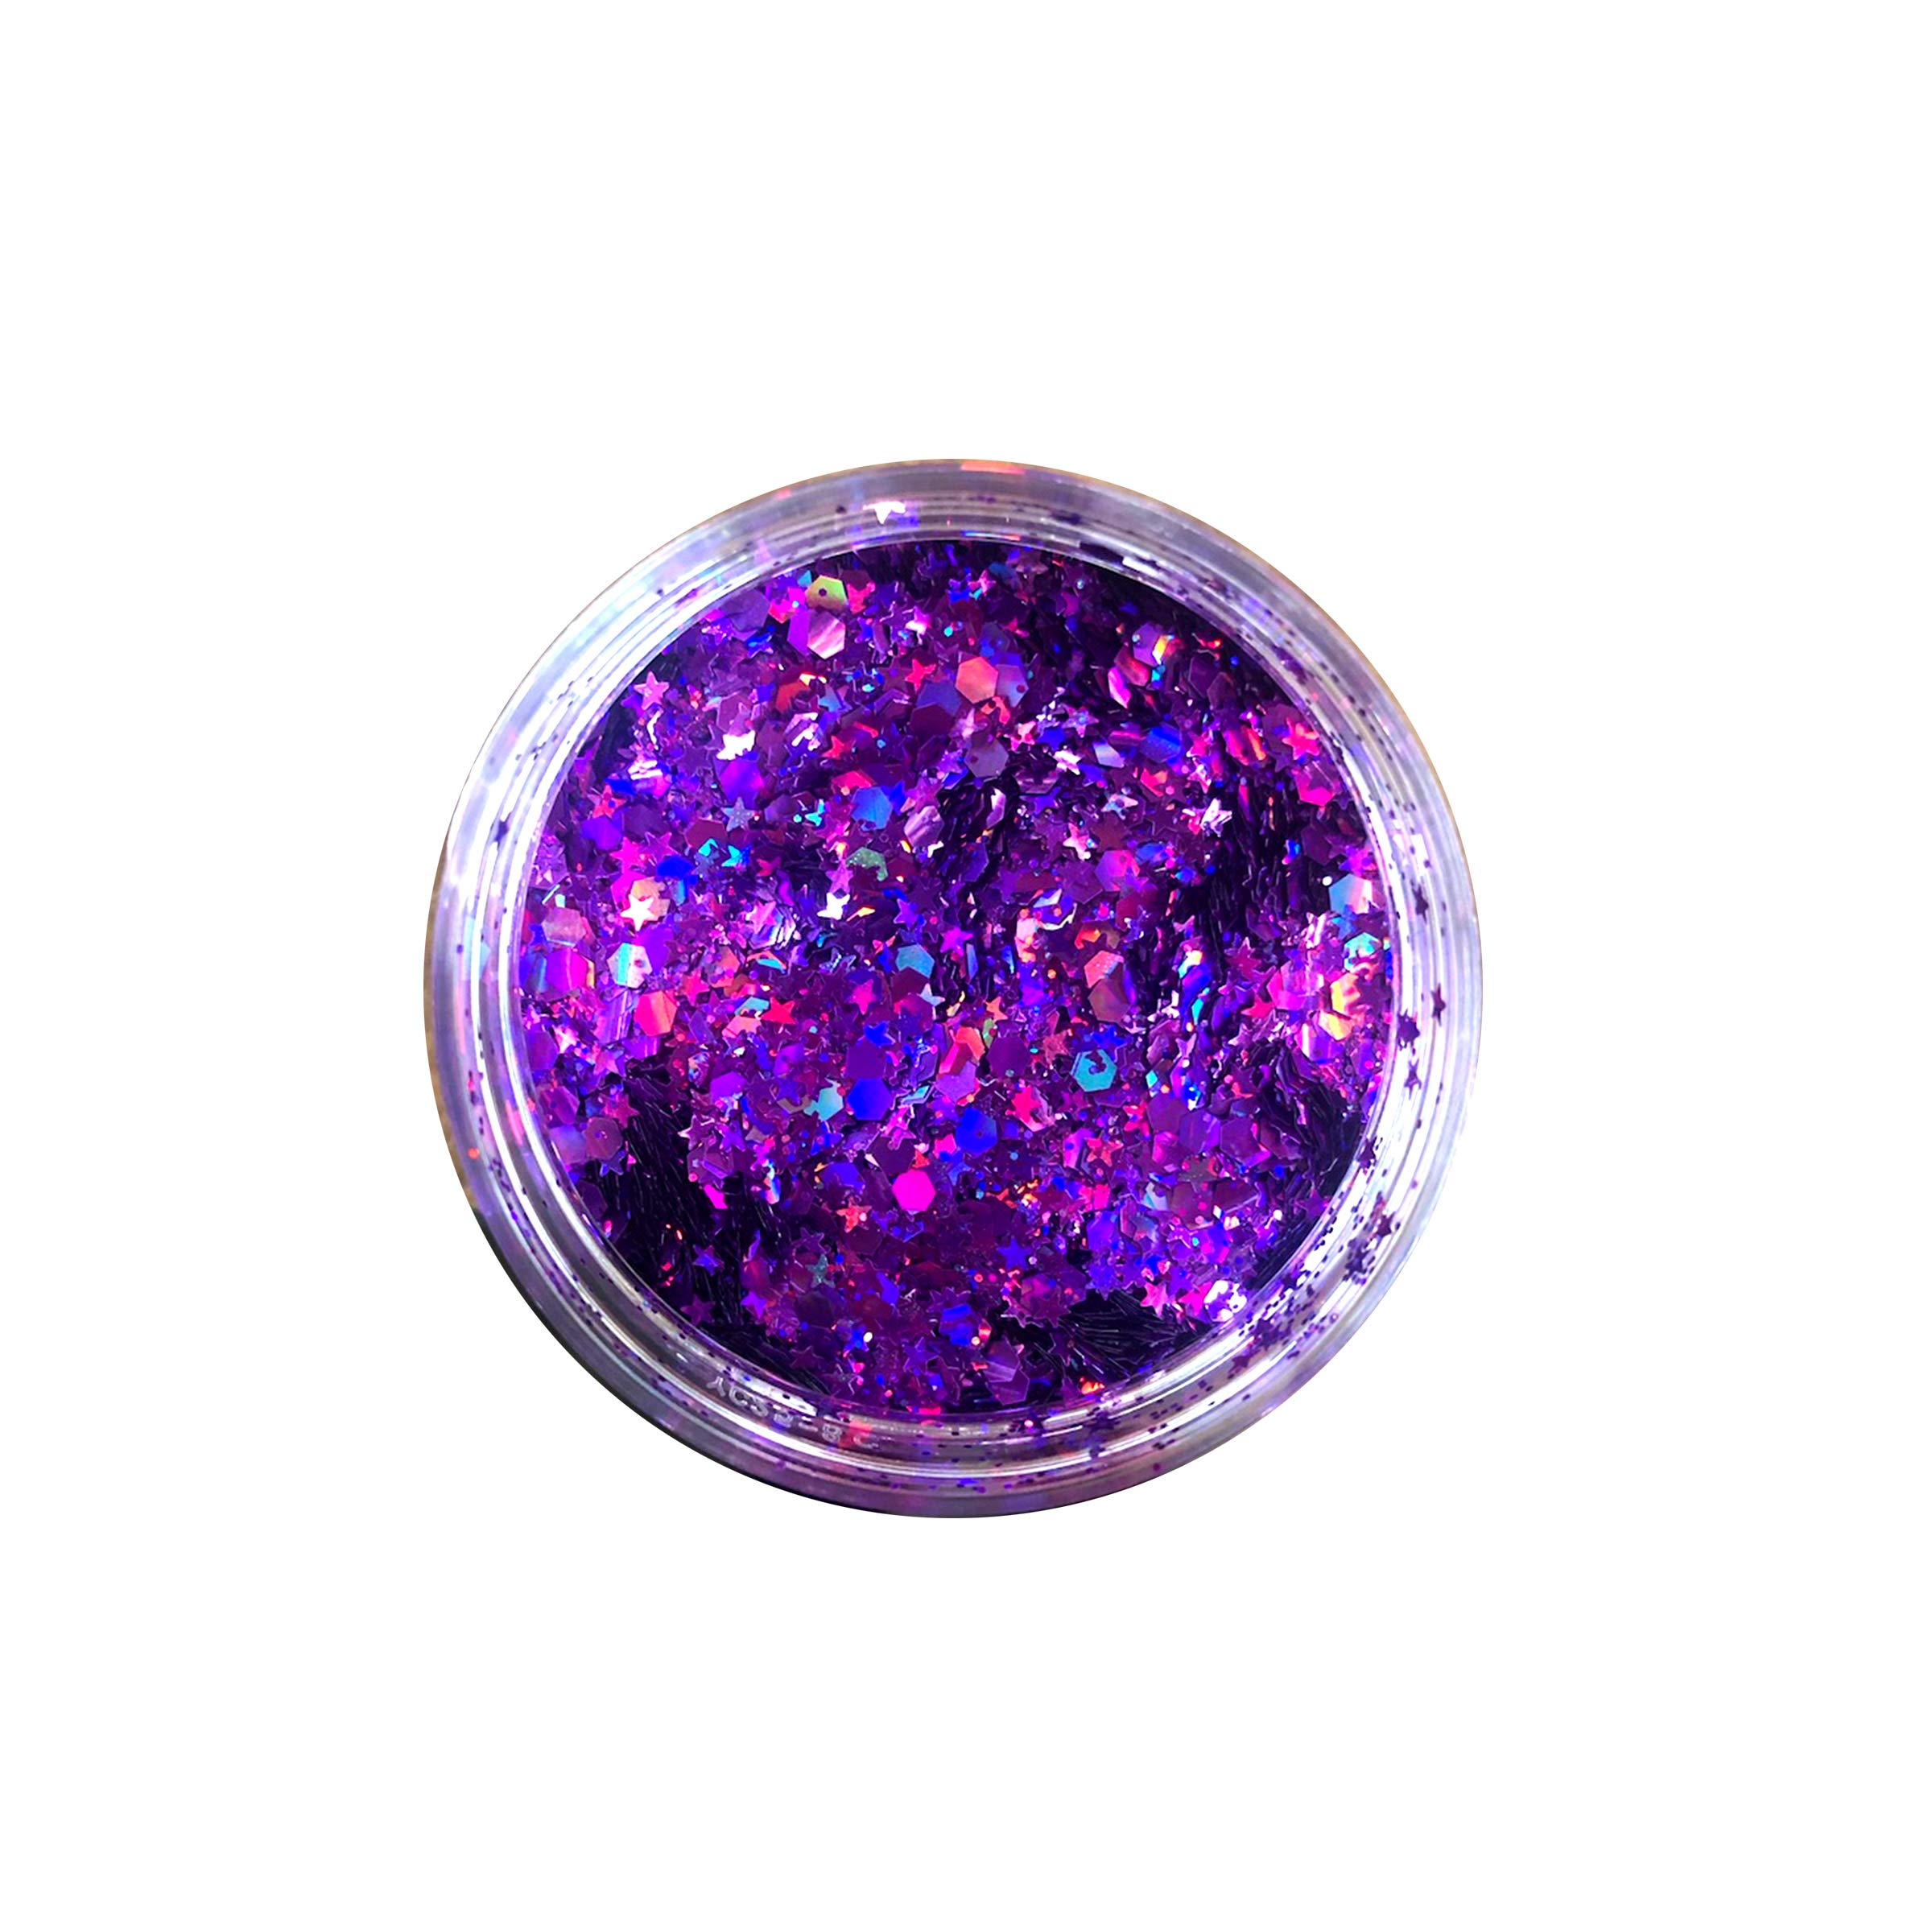 Neva Nude Berry Michevious Purple Large Makeup Artist Pot Holographic Chunky Loose Glitter Sparkle 238ML Festival Rave Face Body Hair by Neva Nude (Image #2)